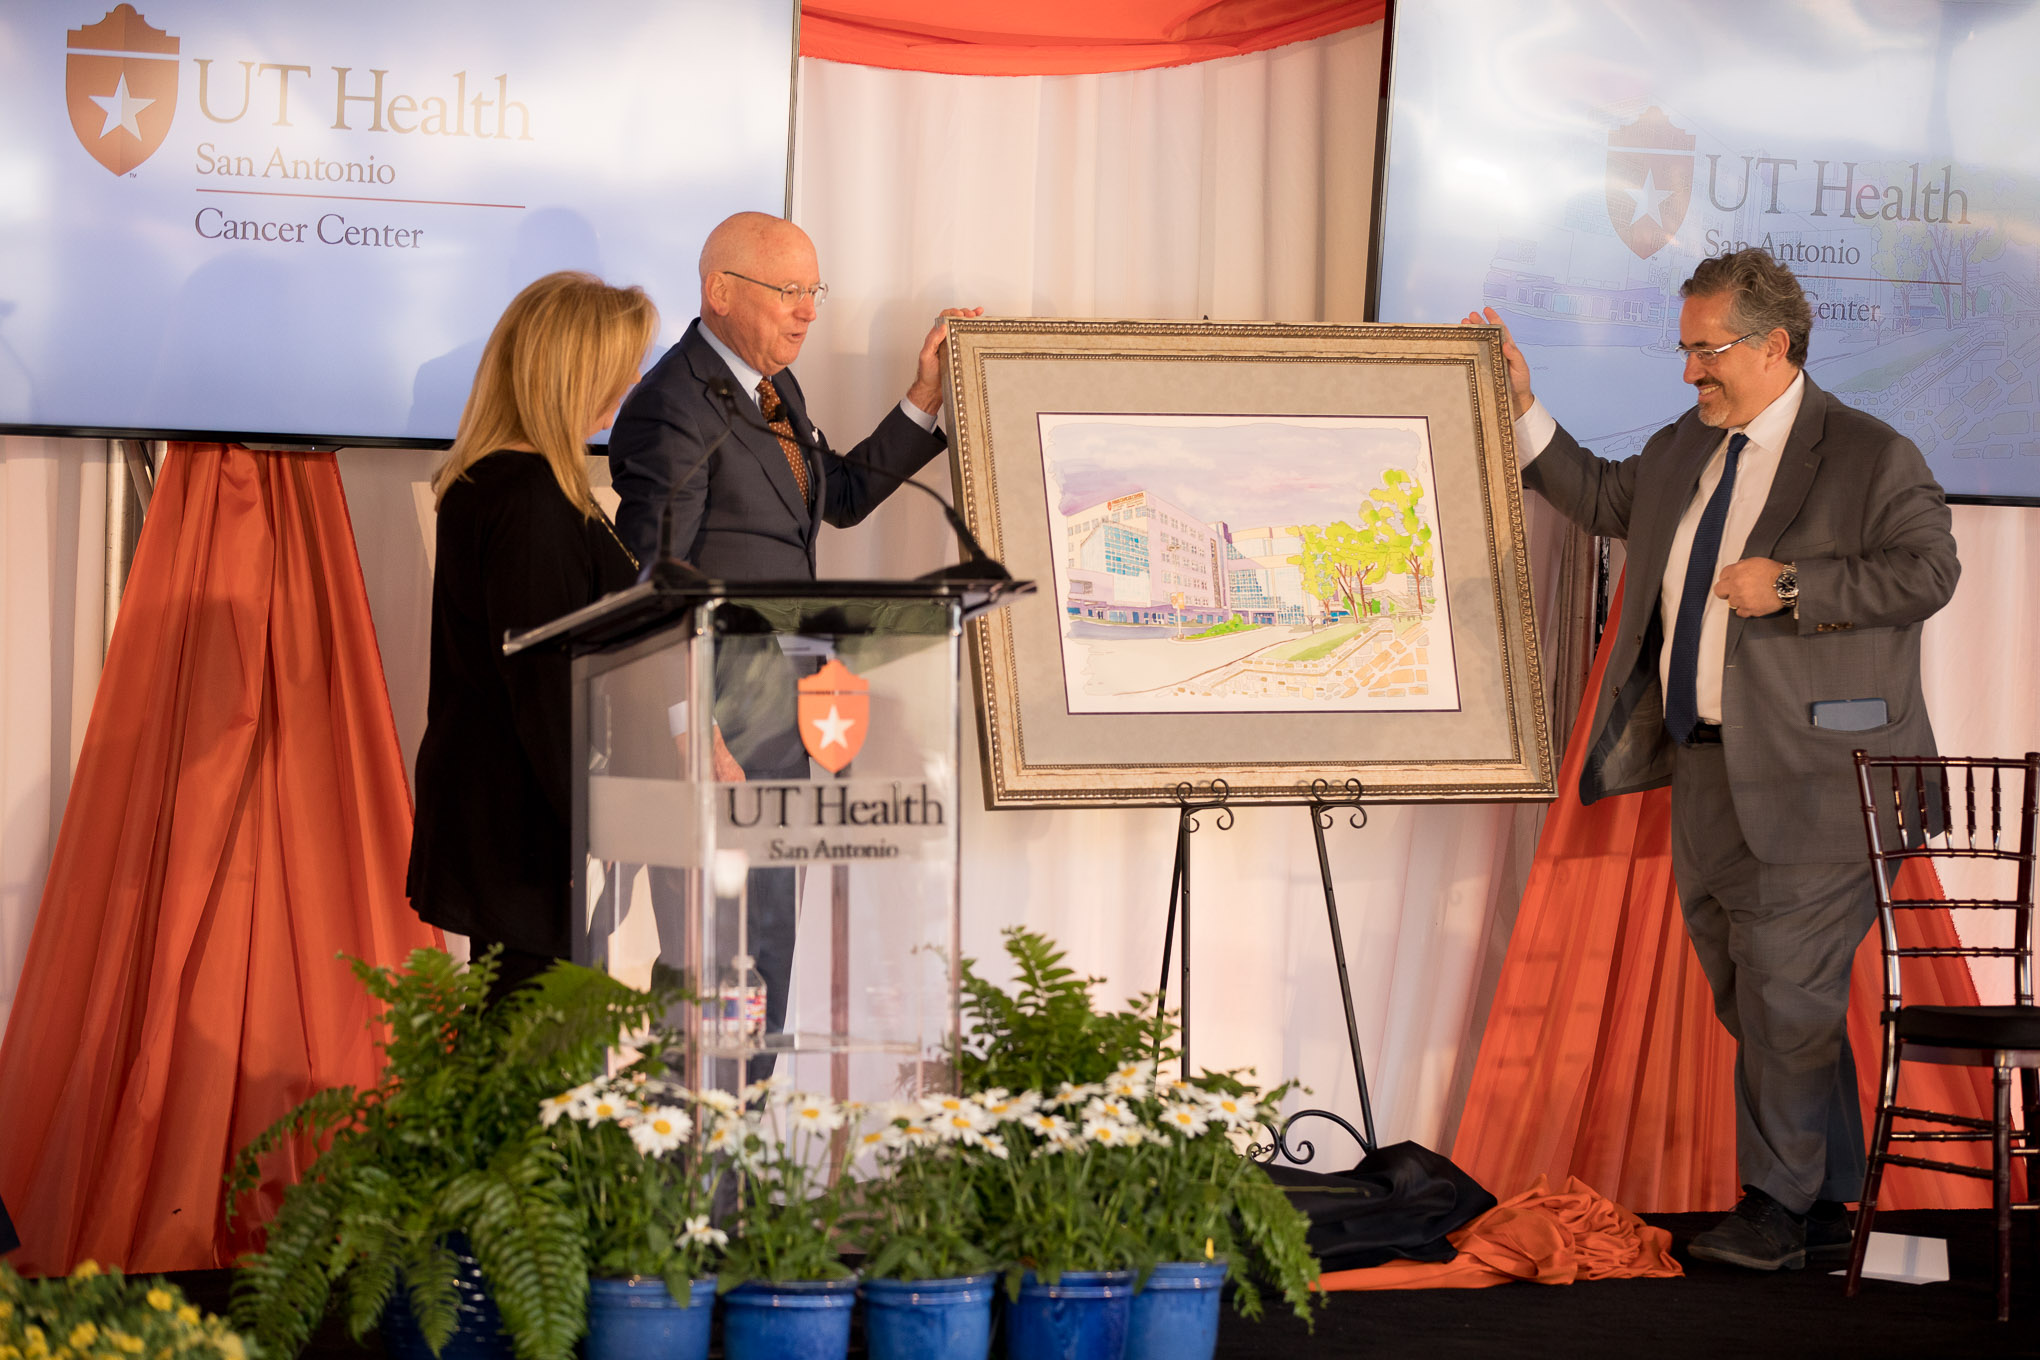 A painting of the Cancer Center is displayed as a gift to Kathryn Mays Johnson.